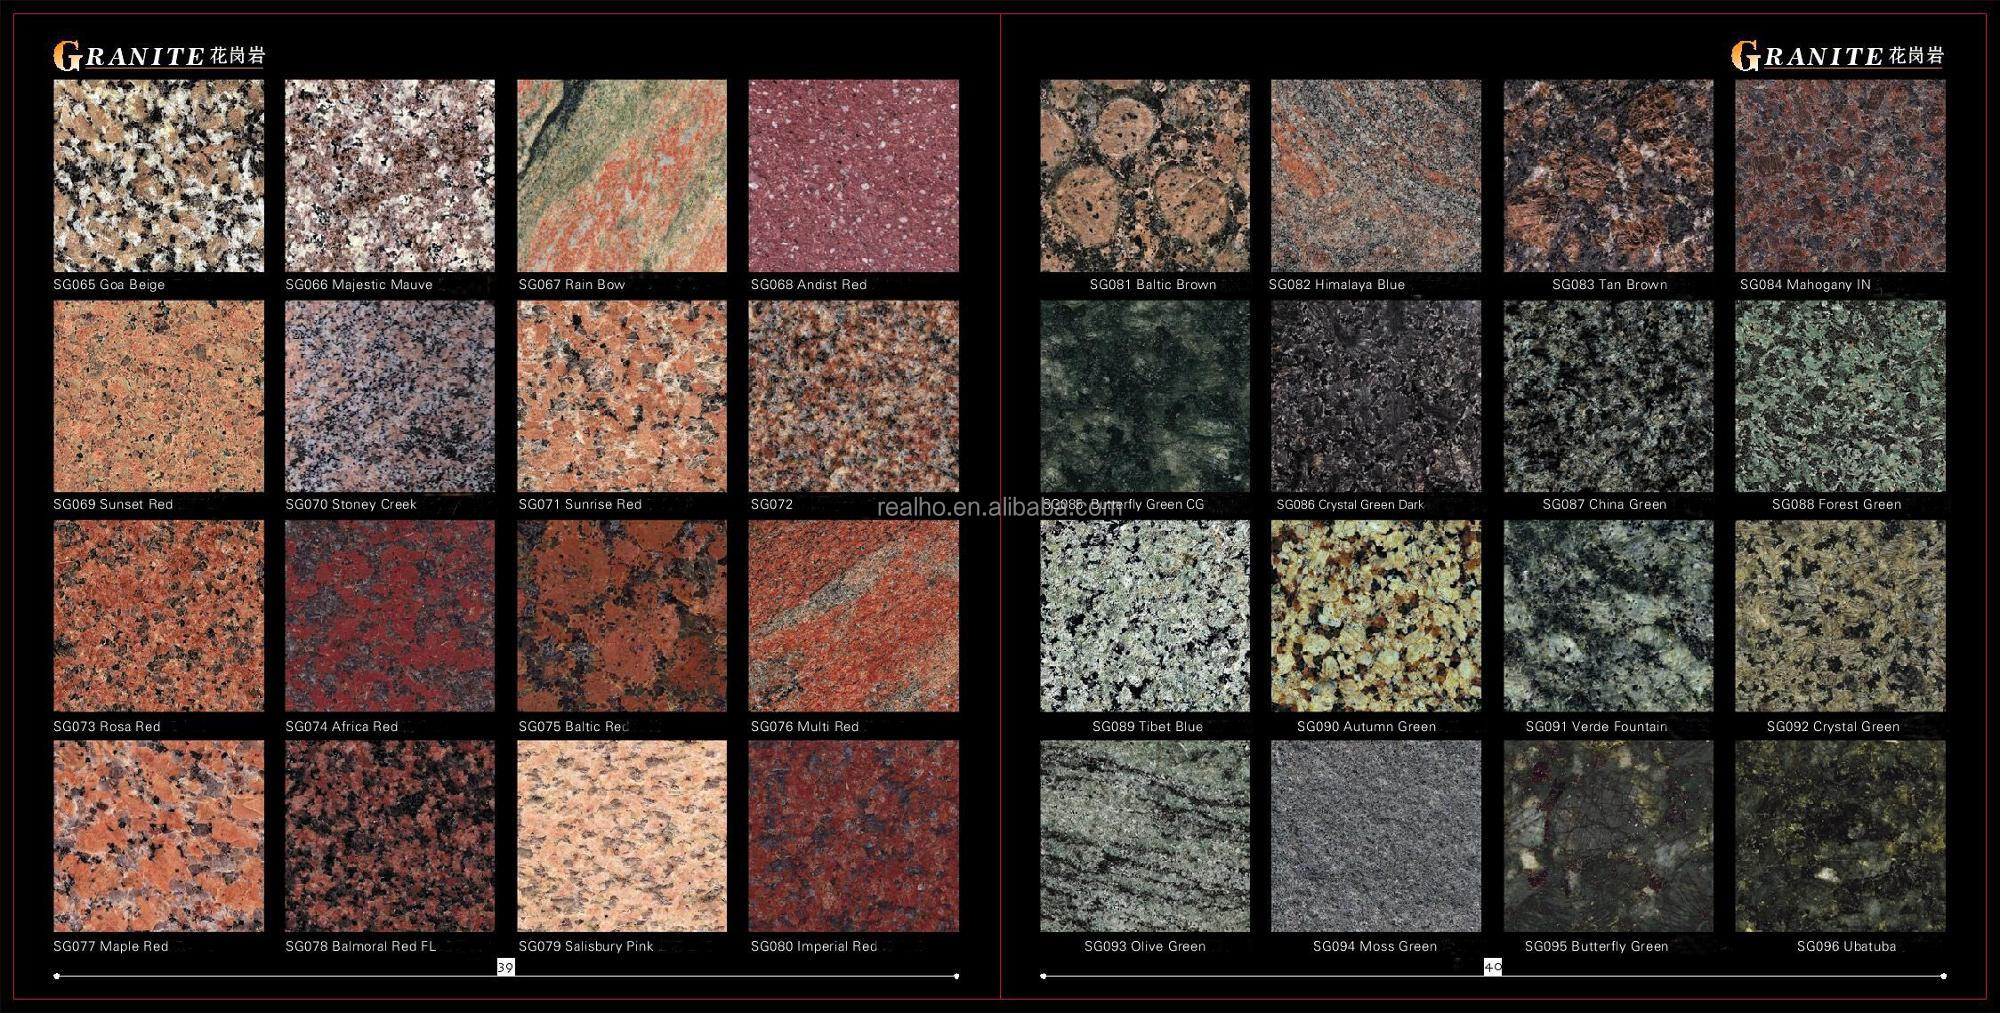 granite catalogue-03.jpg